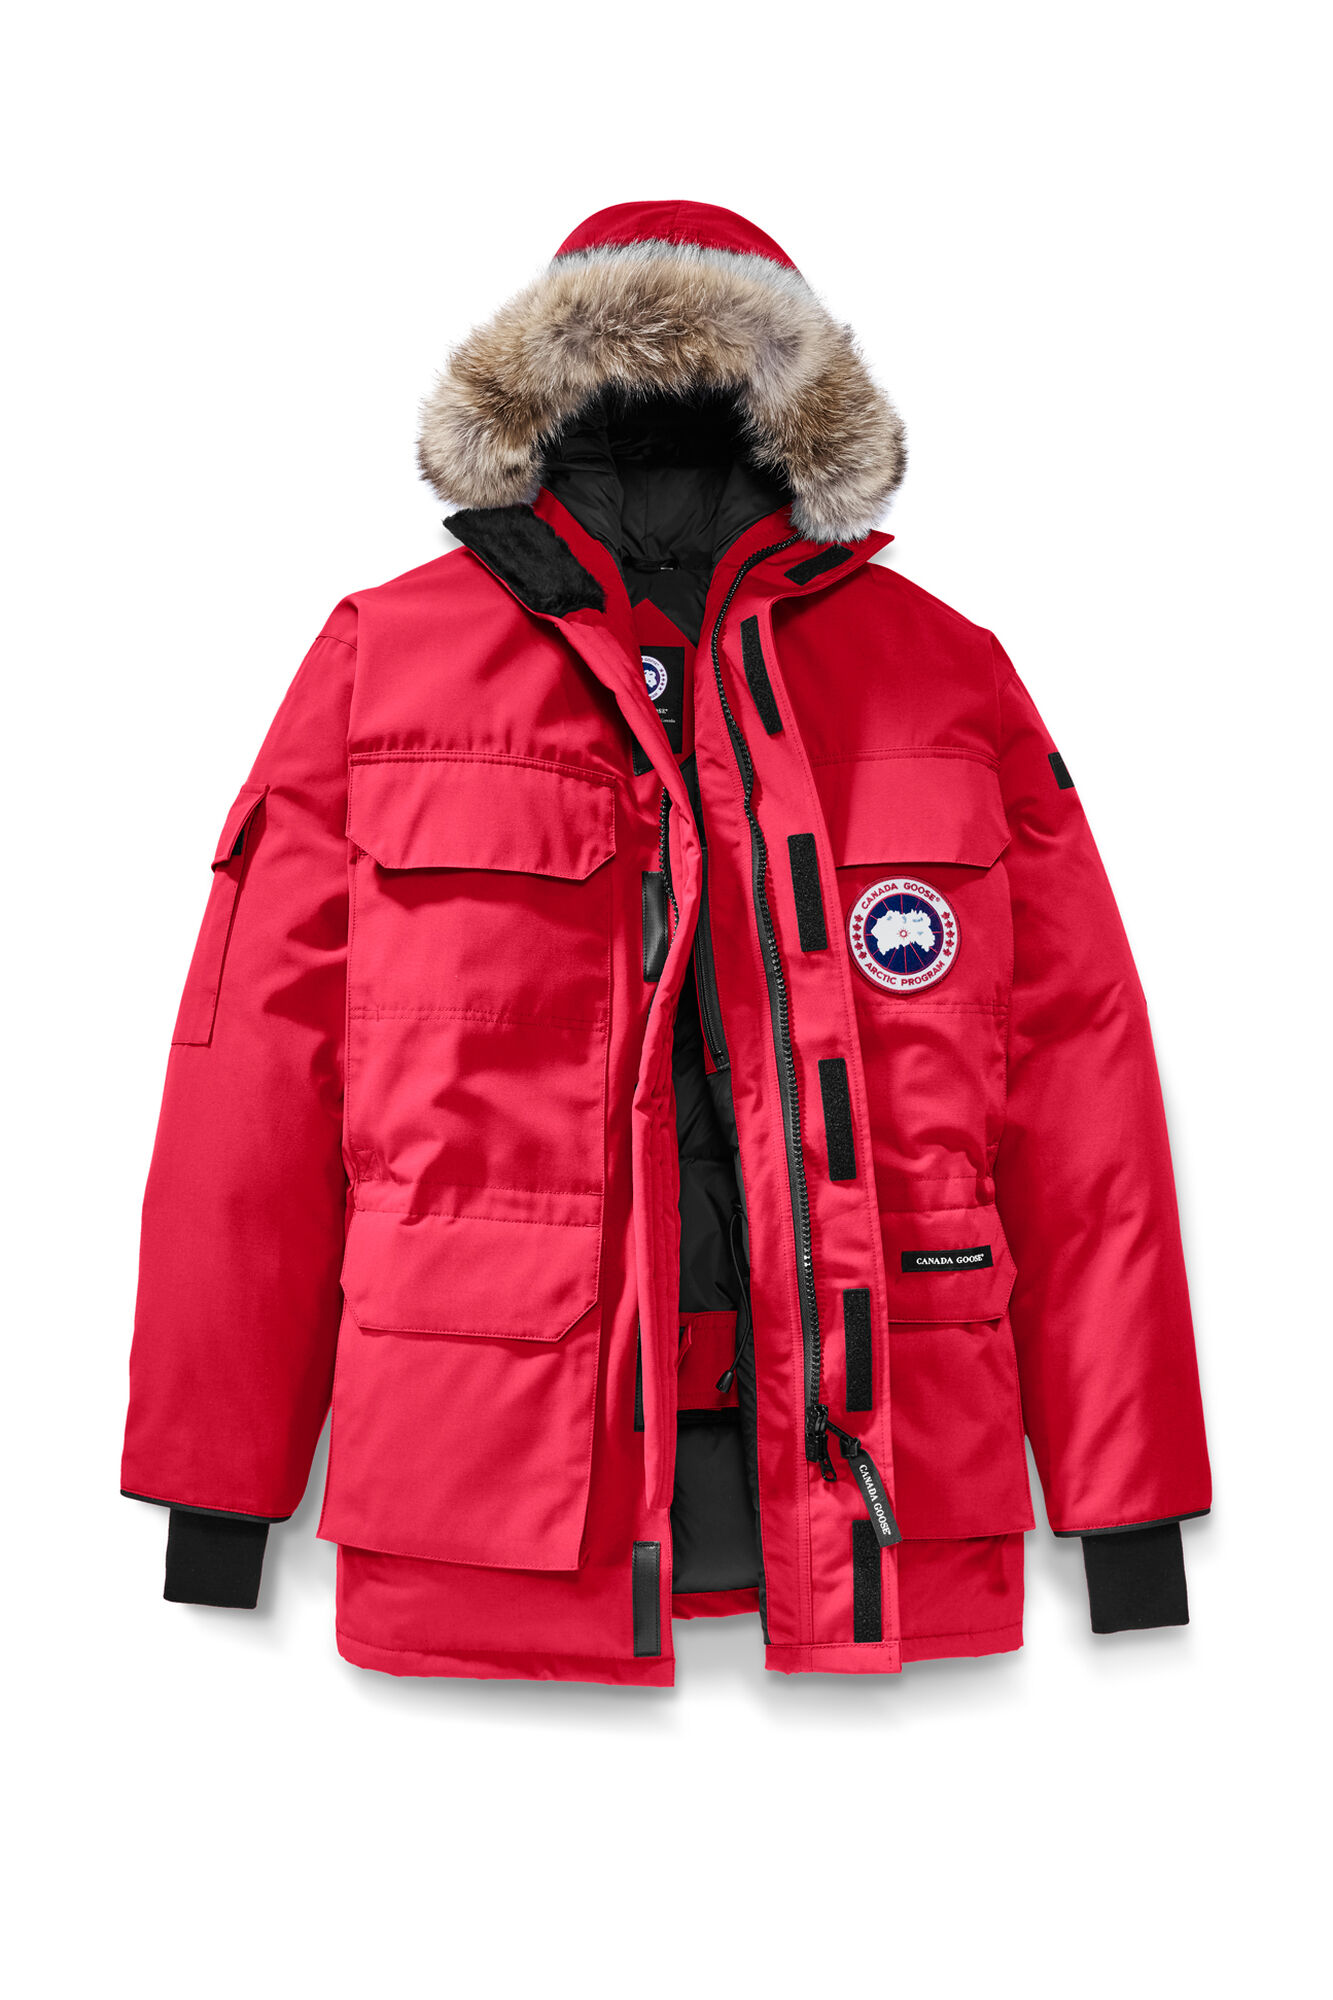 Canada Goose langford parka replica price - Men's Arctic Program Expedition Parka | Canada Goose?